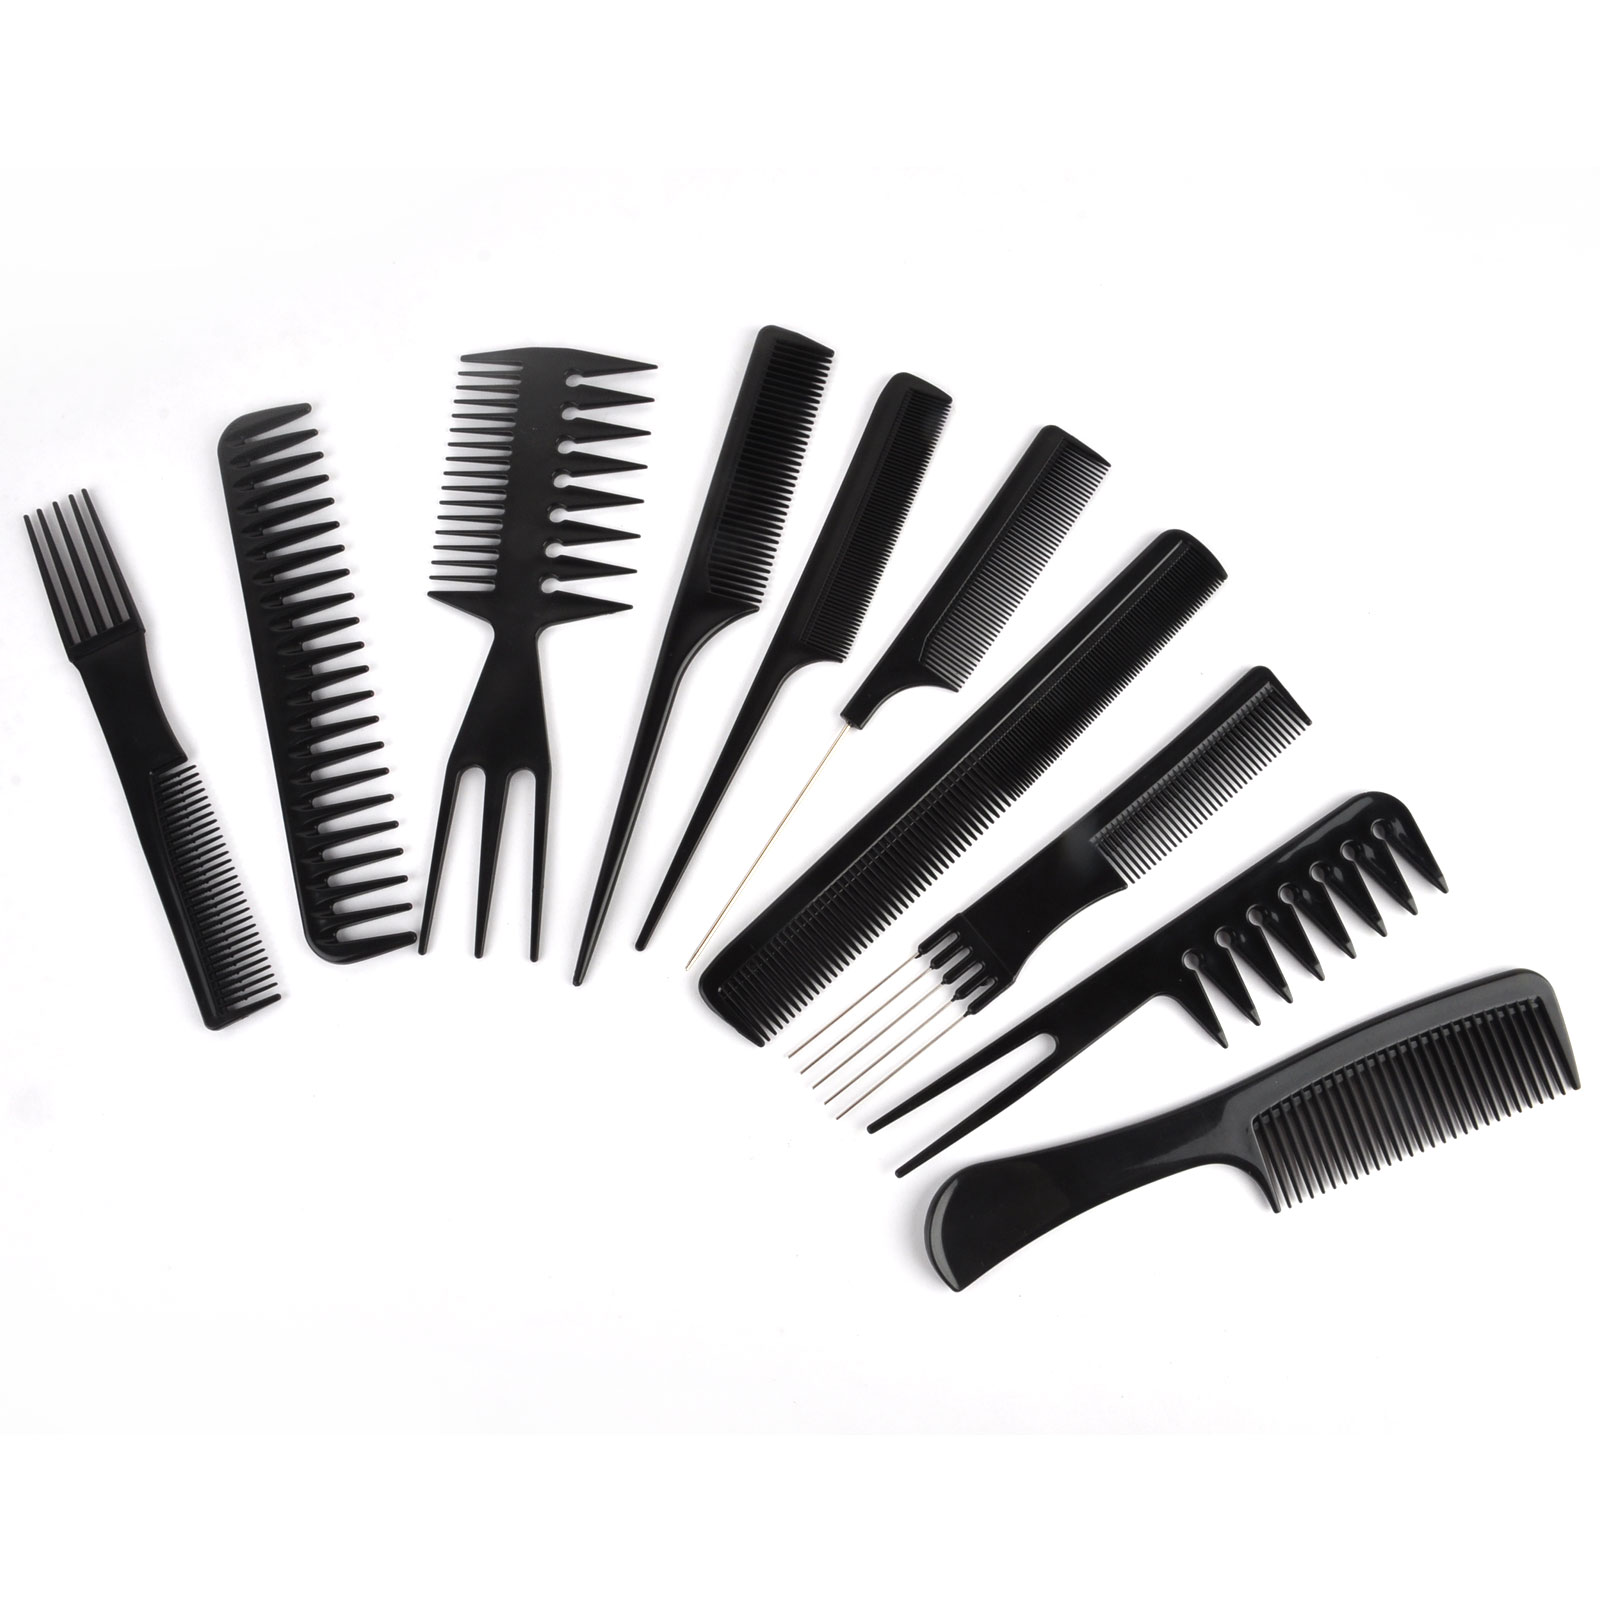 Mayitr 10in1 Professional Stylist Hairdressing Comb Kit Set Black Salon Barber Tool Suitable For Salon Home  Styling Tool